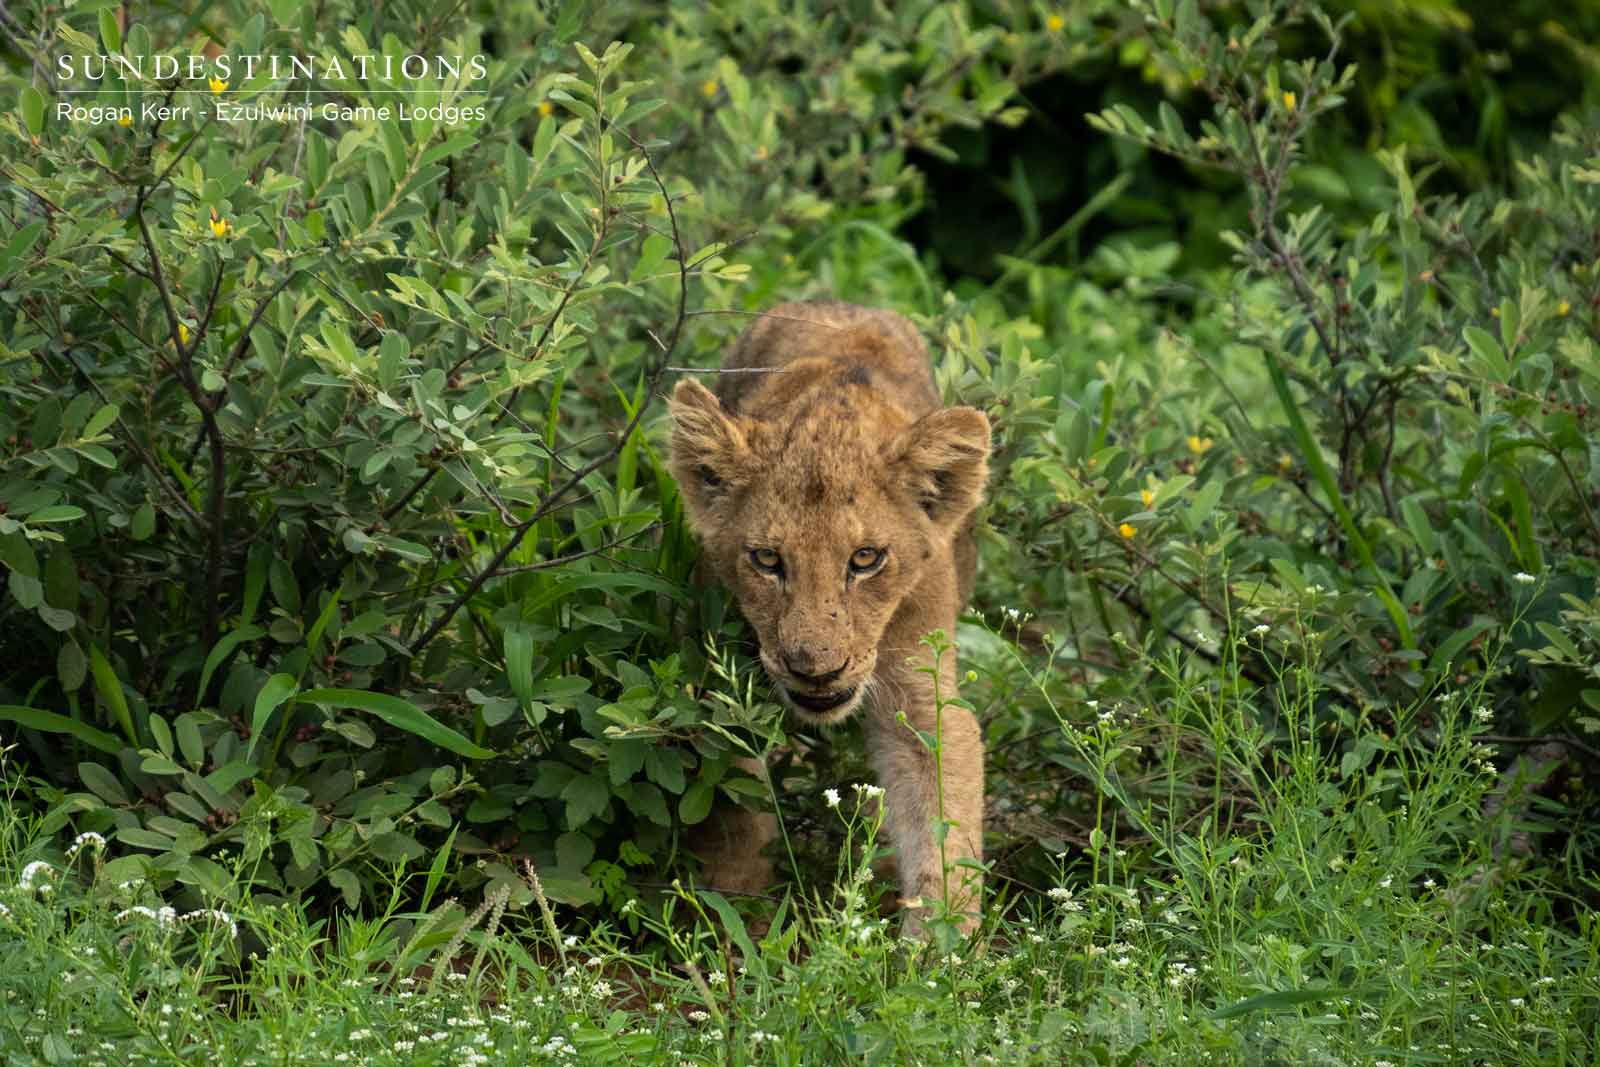 Lion Cub in Shrubbery